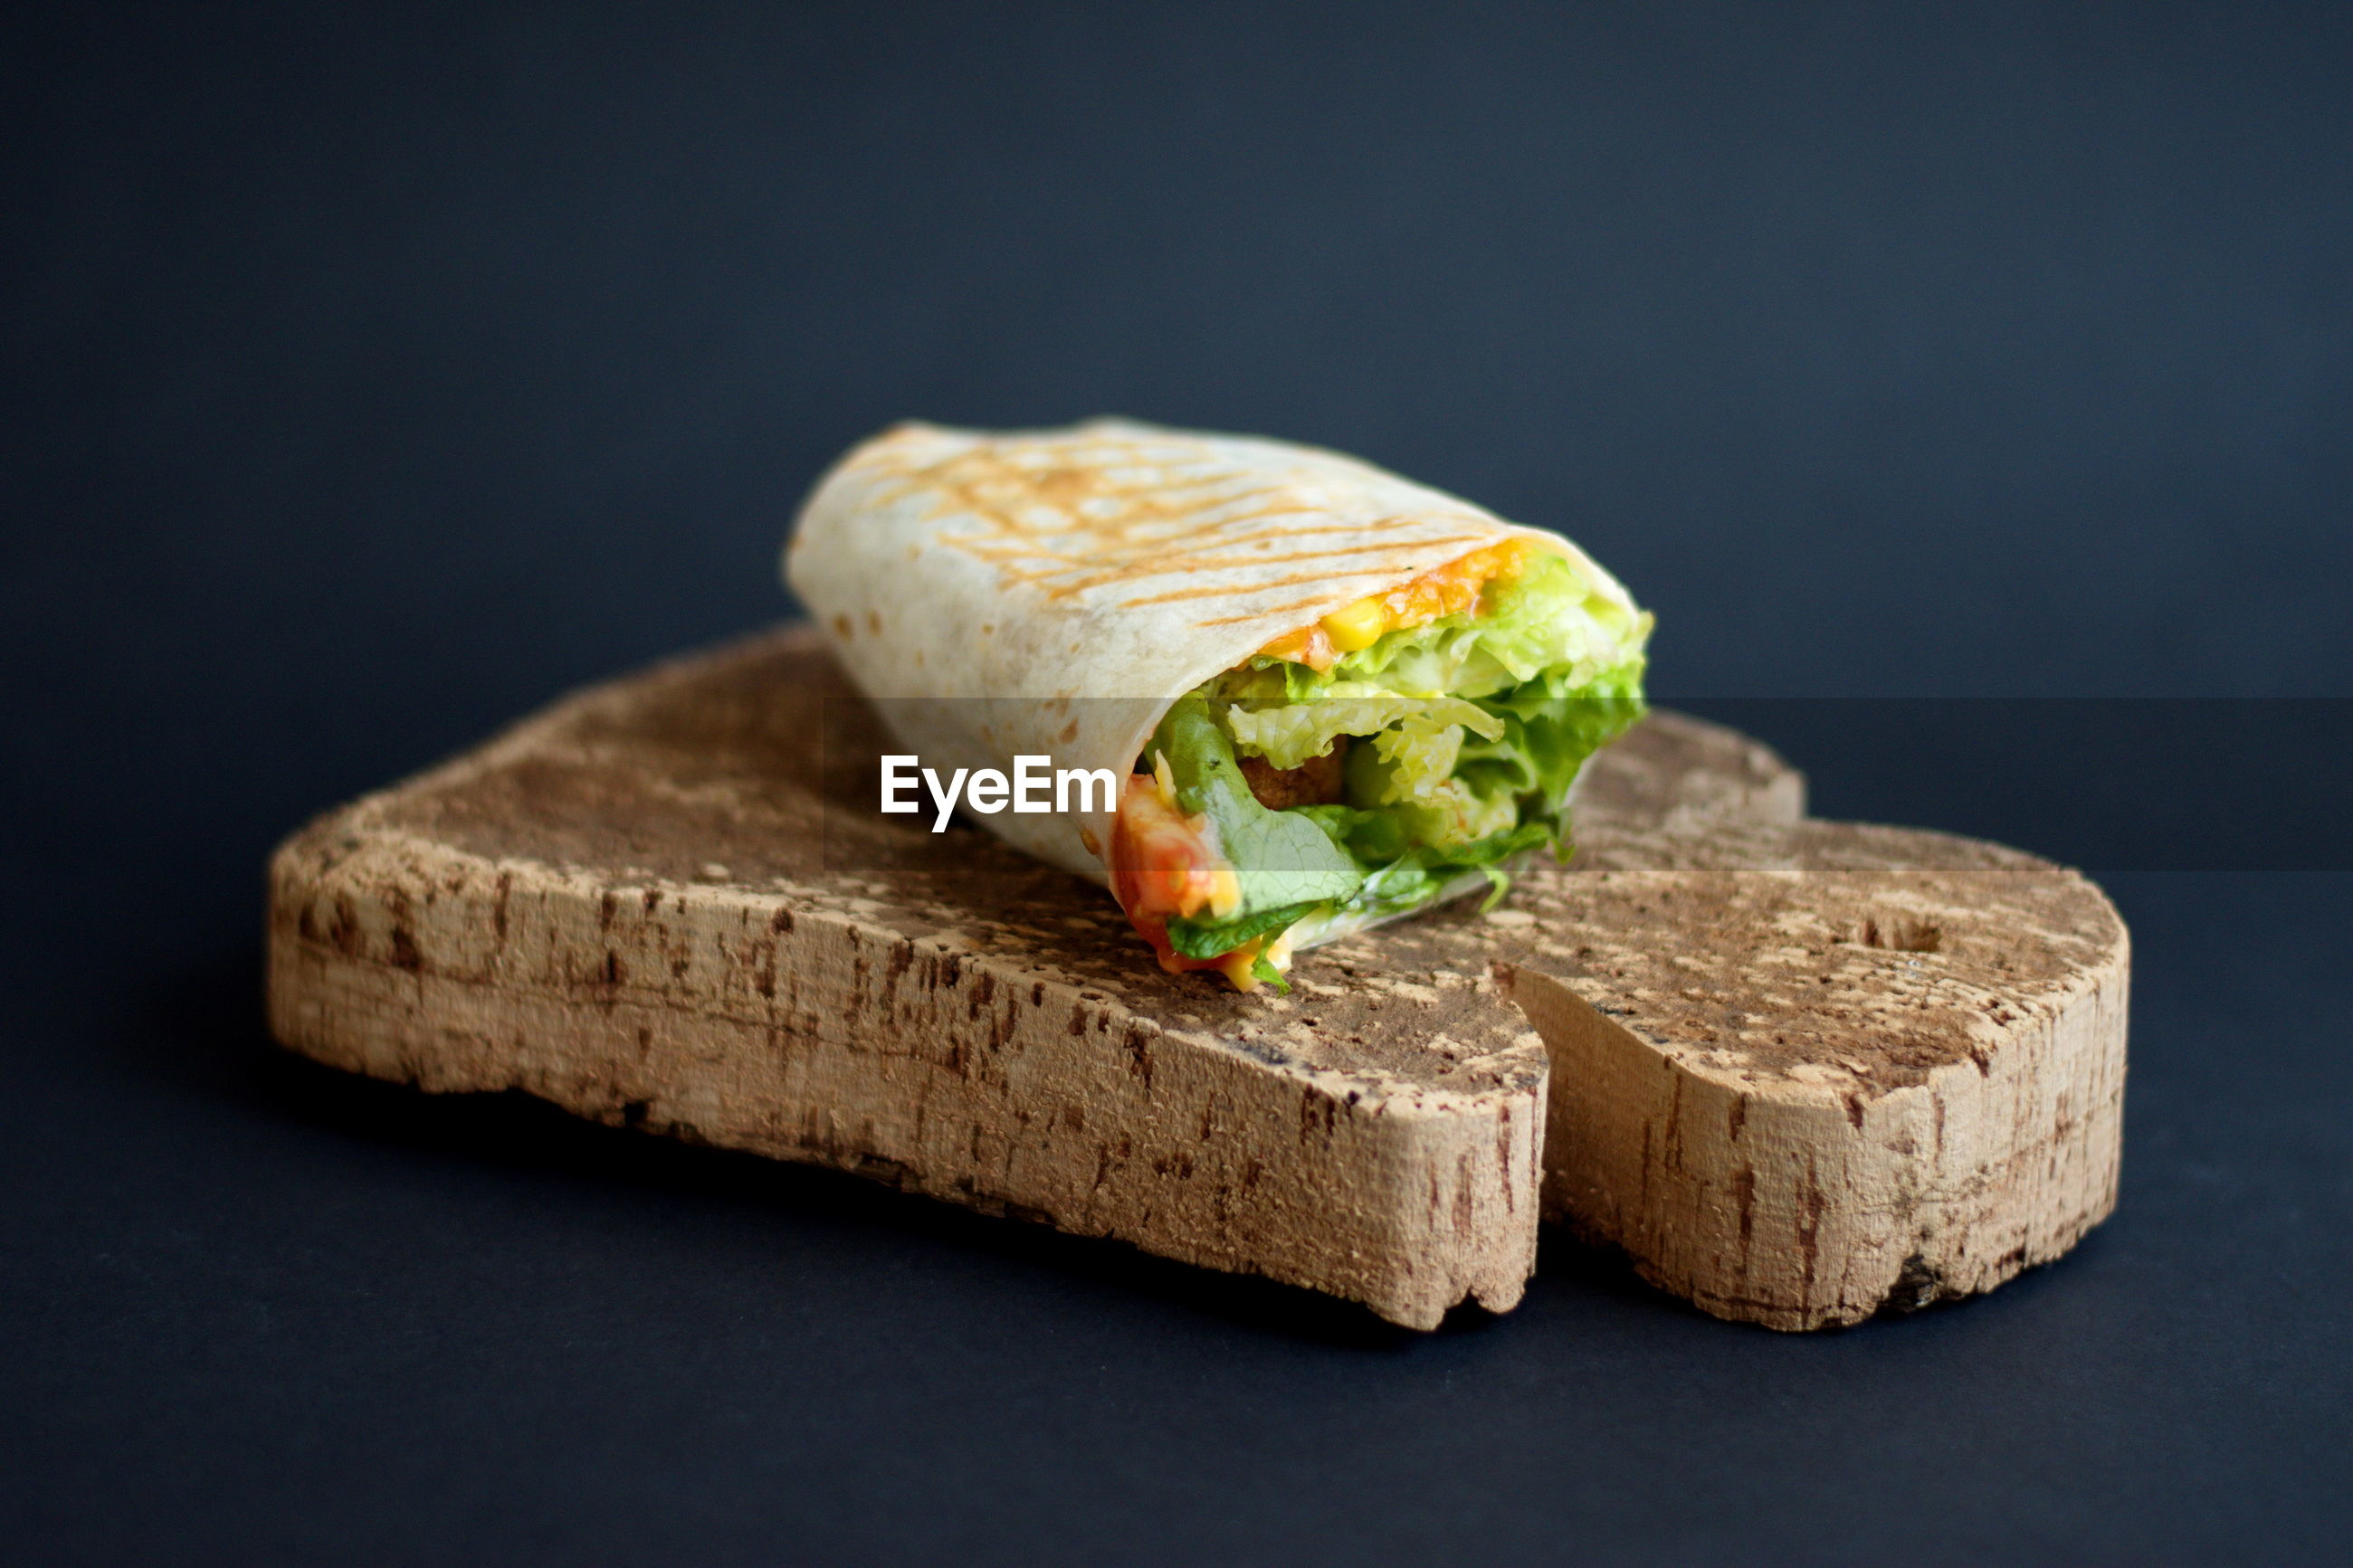 Tortilla with fried chicken meat and vegetables on cutting board against black background